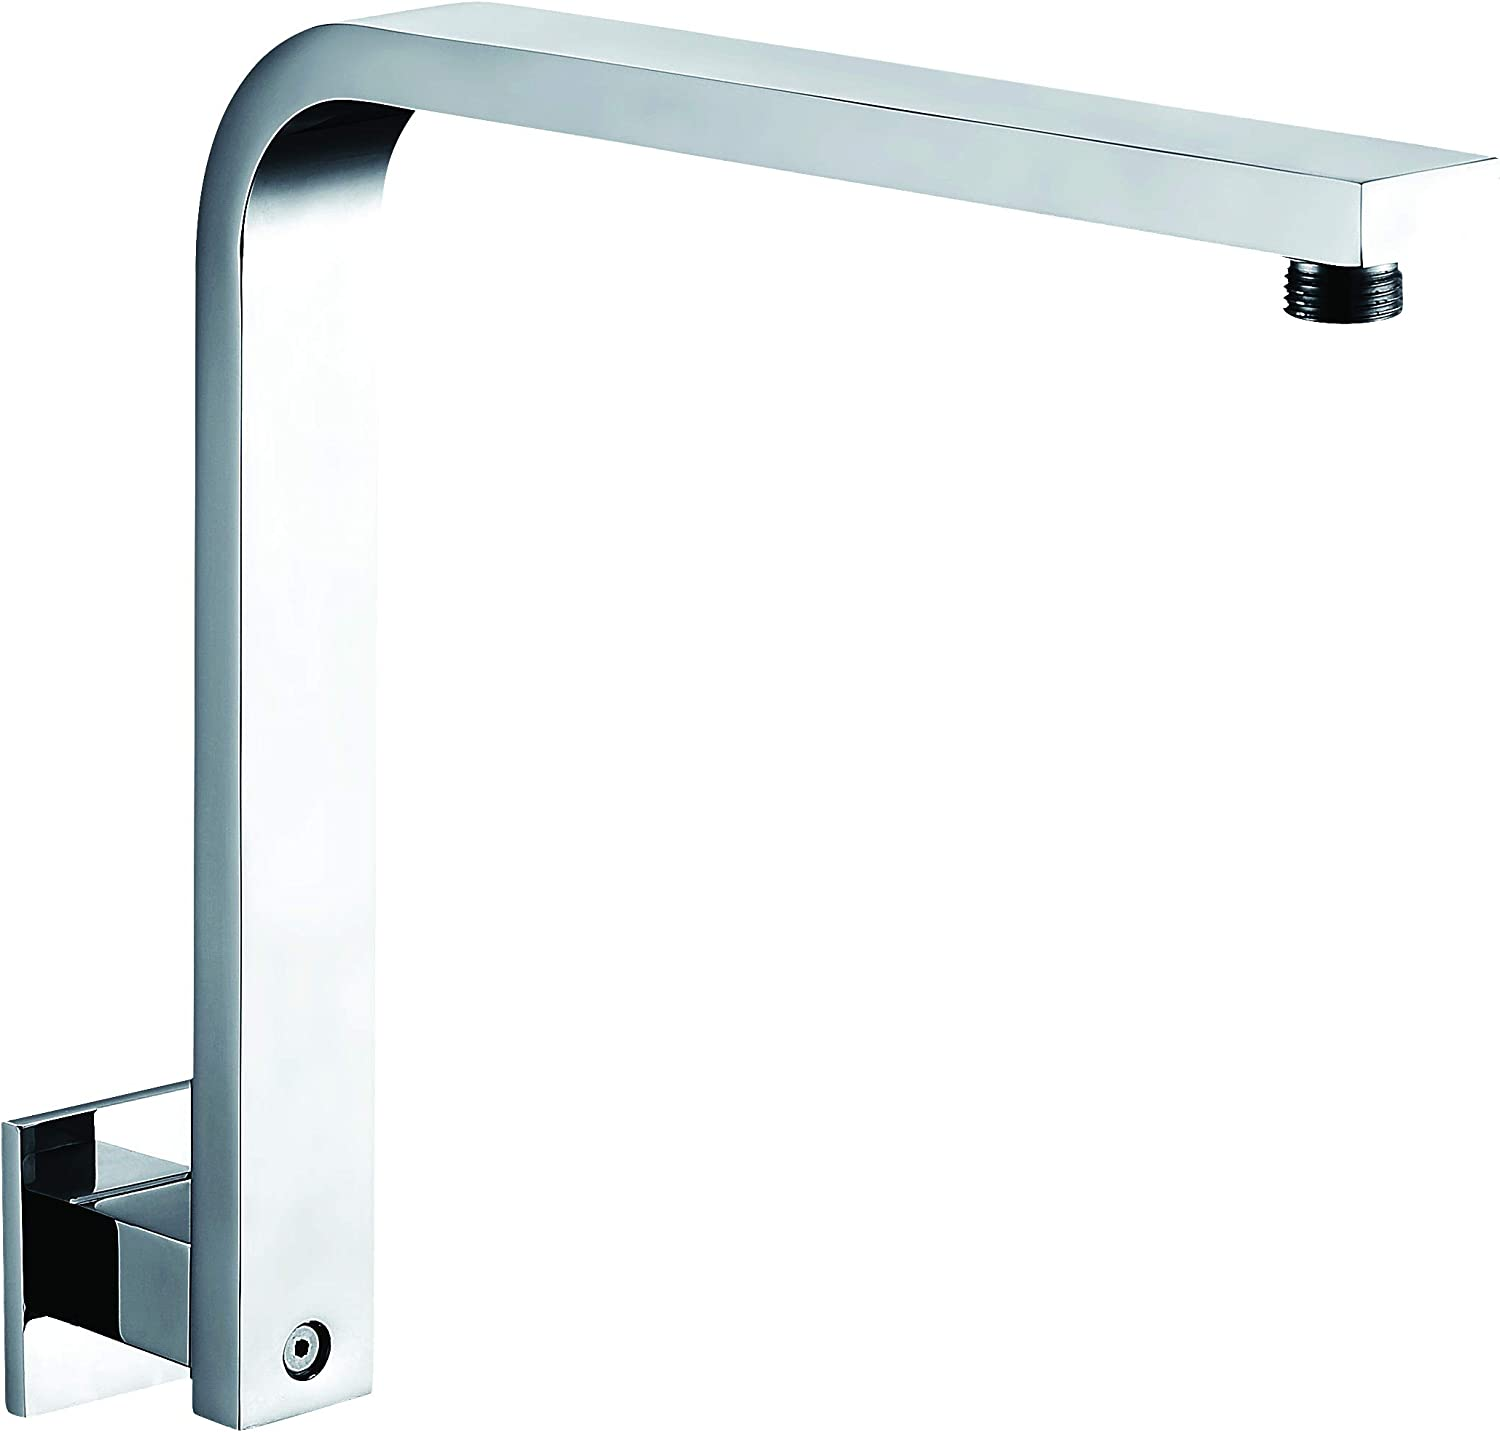 ALFI brand Recommended AB12GSW-PC Polished Chrome Special sale item Mou Raised Square 12